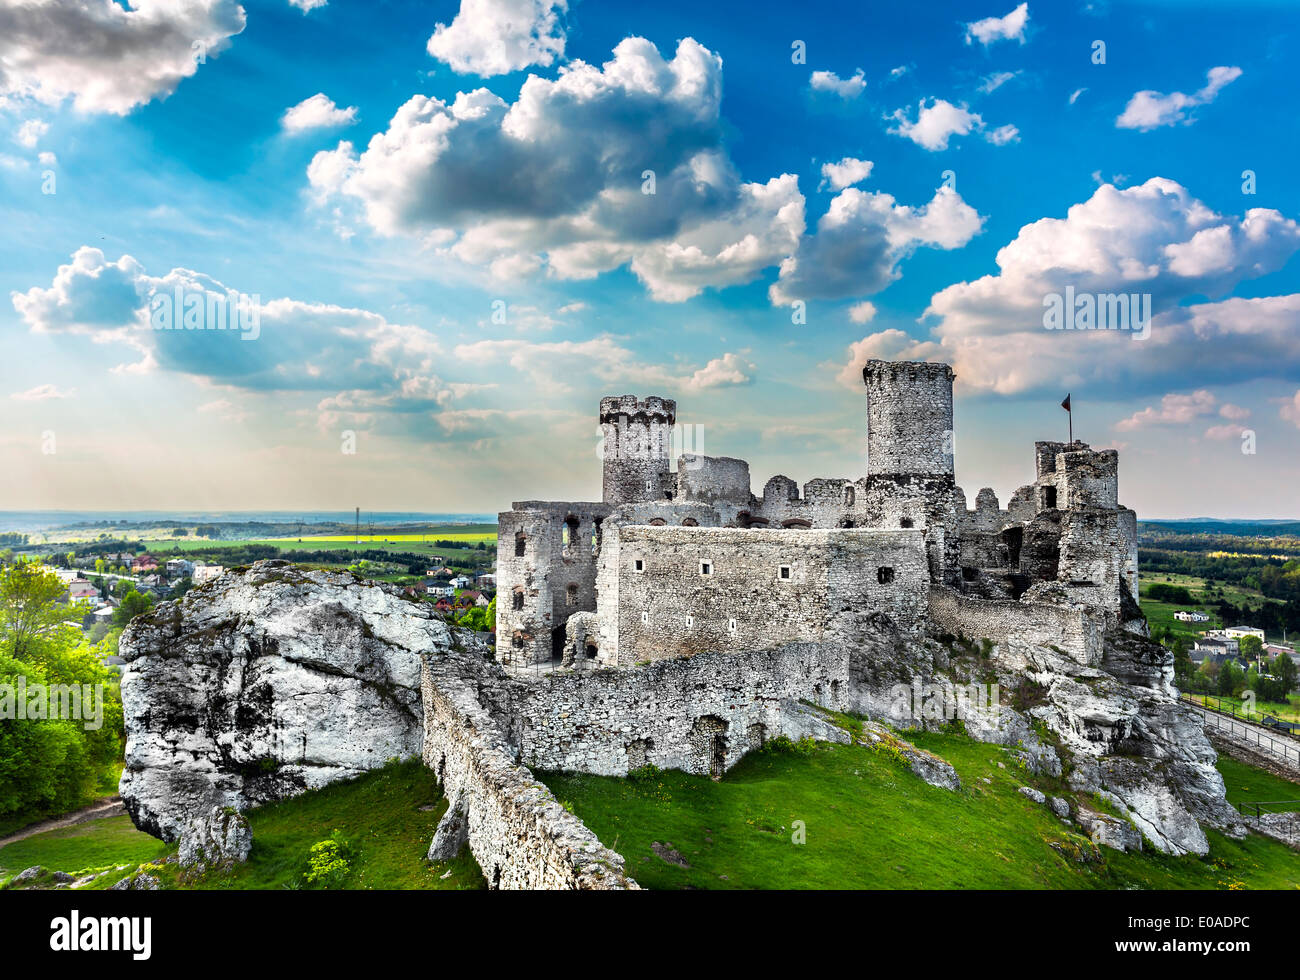 Ruins of a castle, Ogrodzieniec fortifications, Poland. - Stock Image